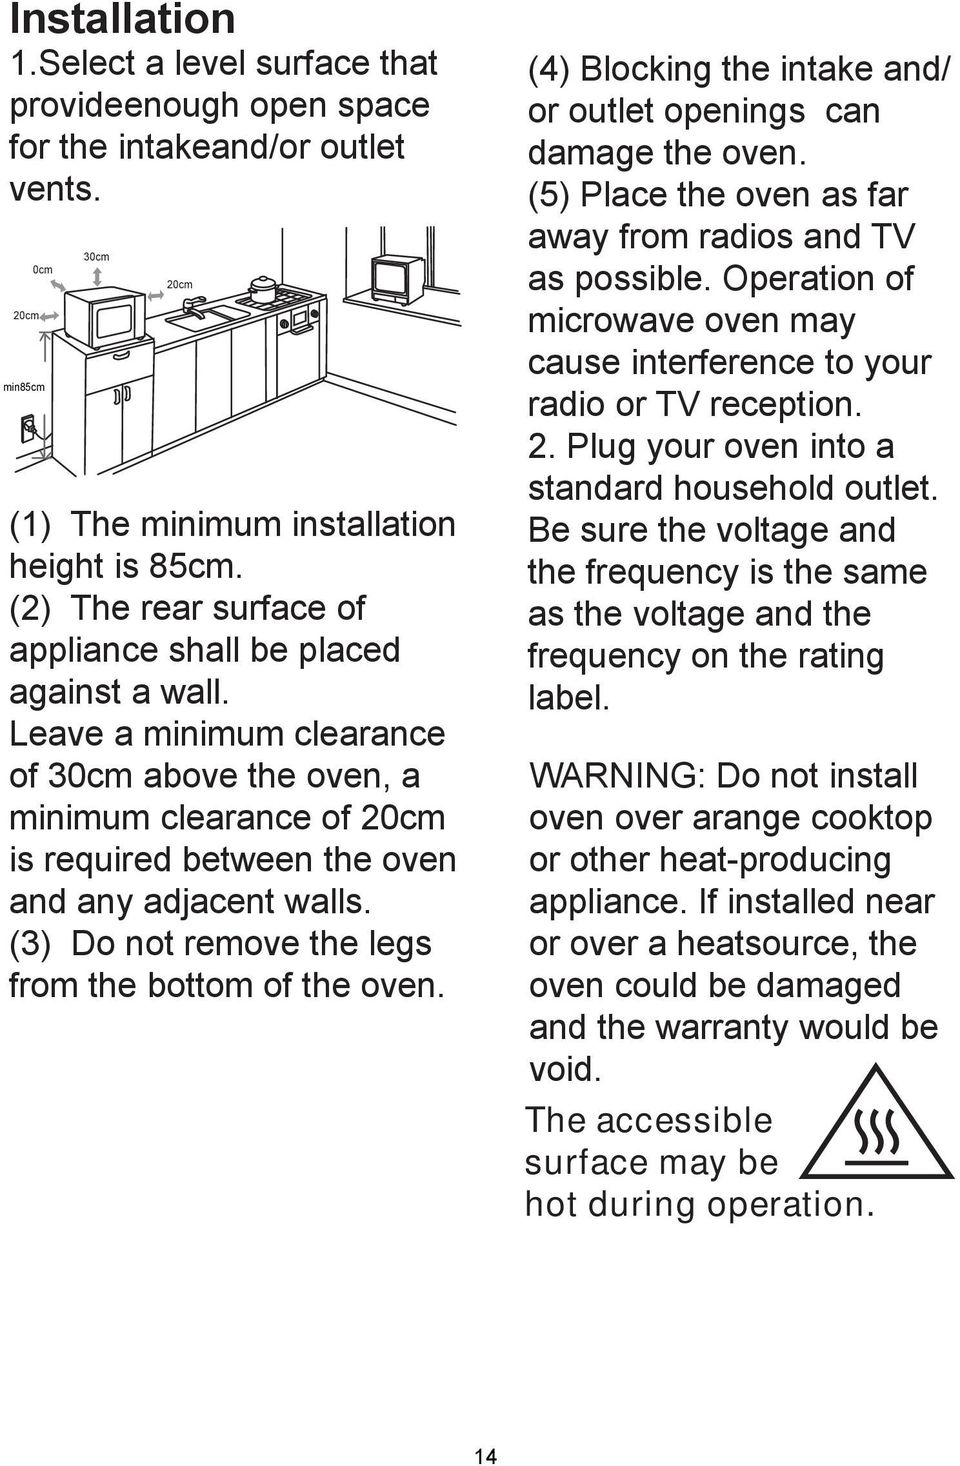 (3) Do not remove the legs from the bottom of the oven. (4) Blocking the intake and/ or outlet openings can damage the oven. (5) Place the oven as far away from radios and TV as possible.